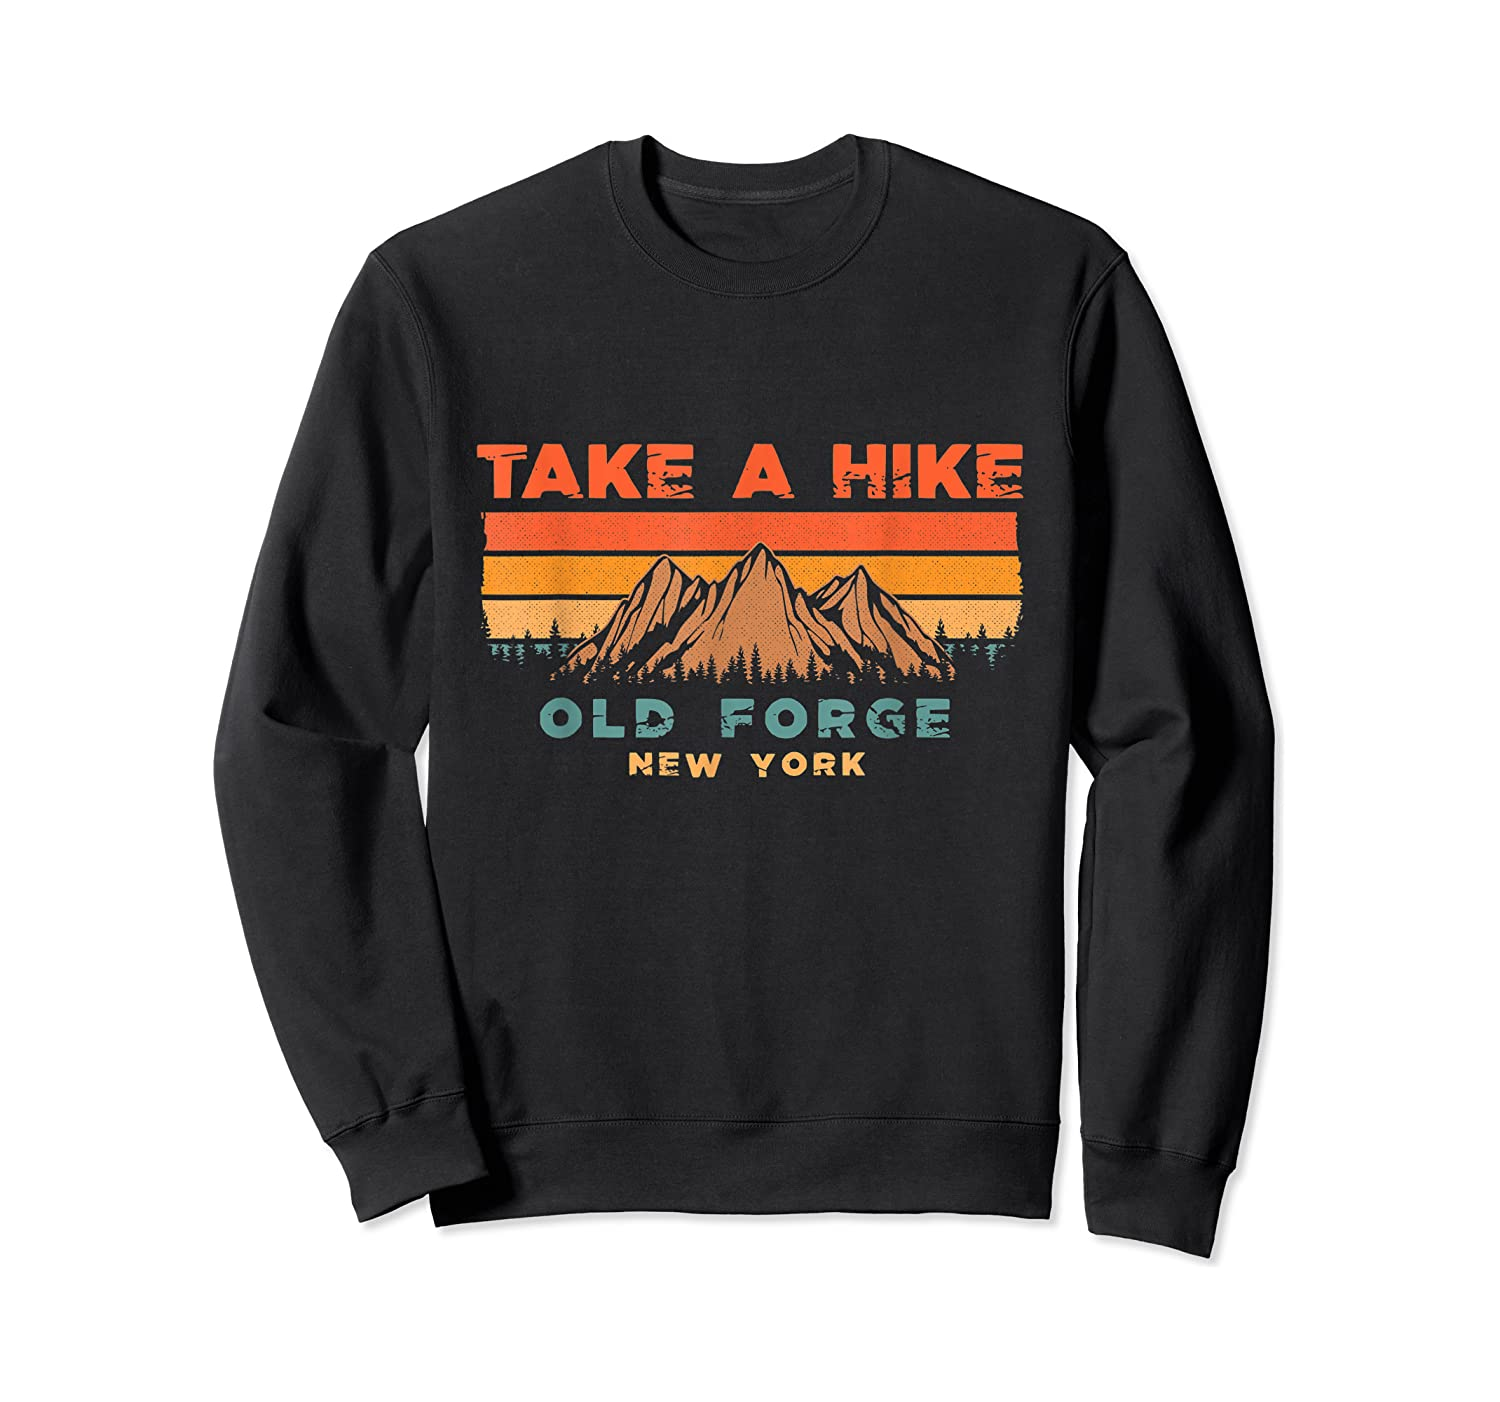 New York Vintage Take A Hike Old Forge Moutain T-shirt Crewneck Sweater